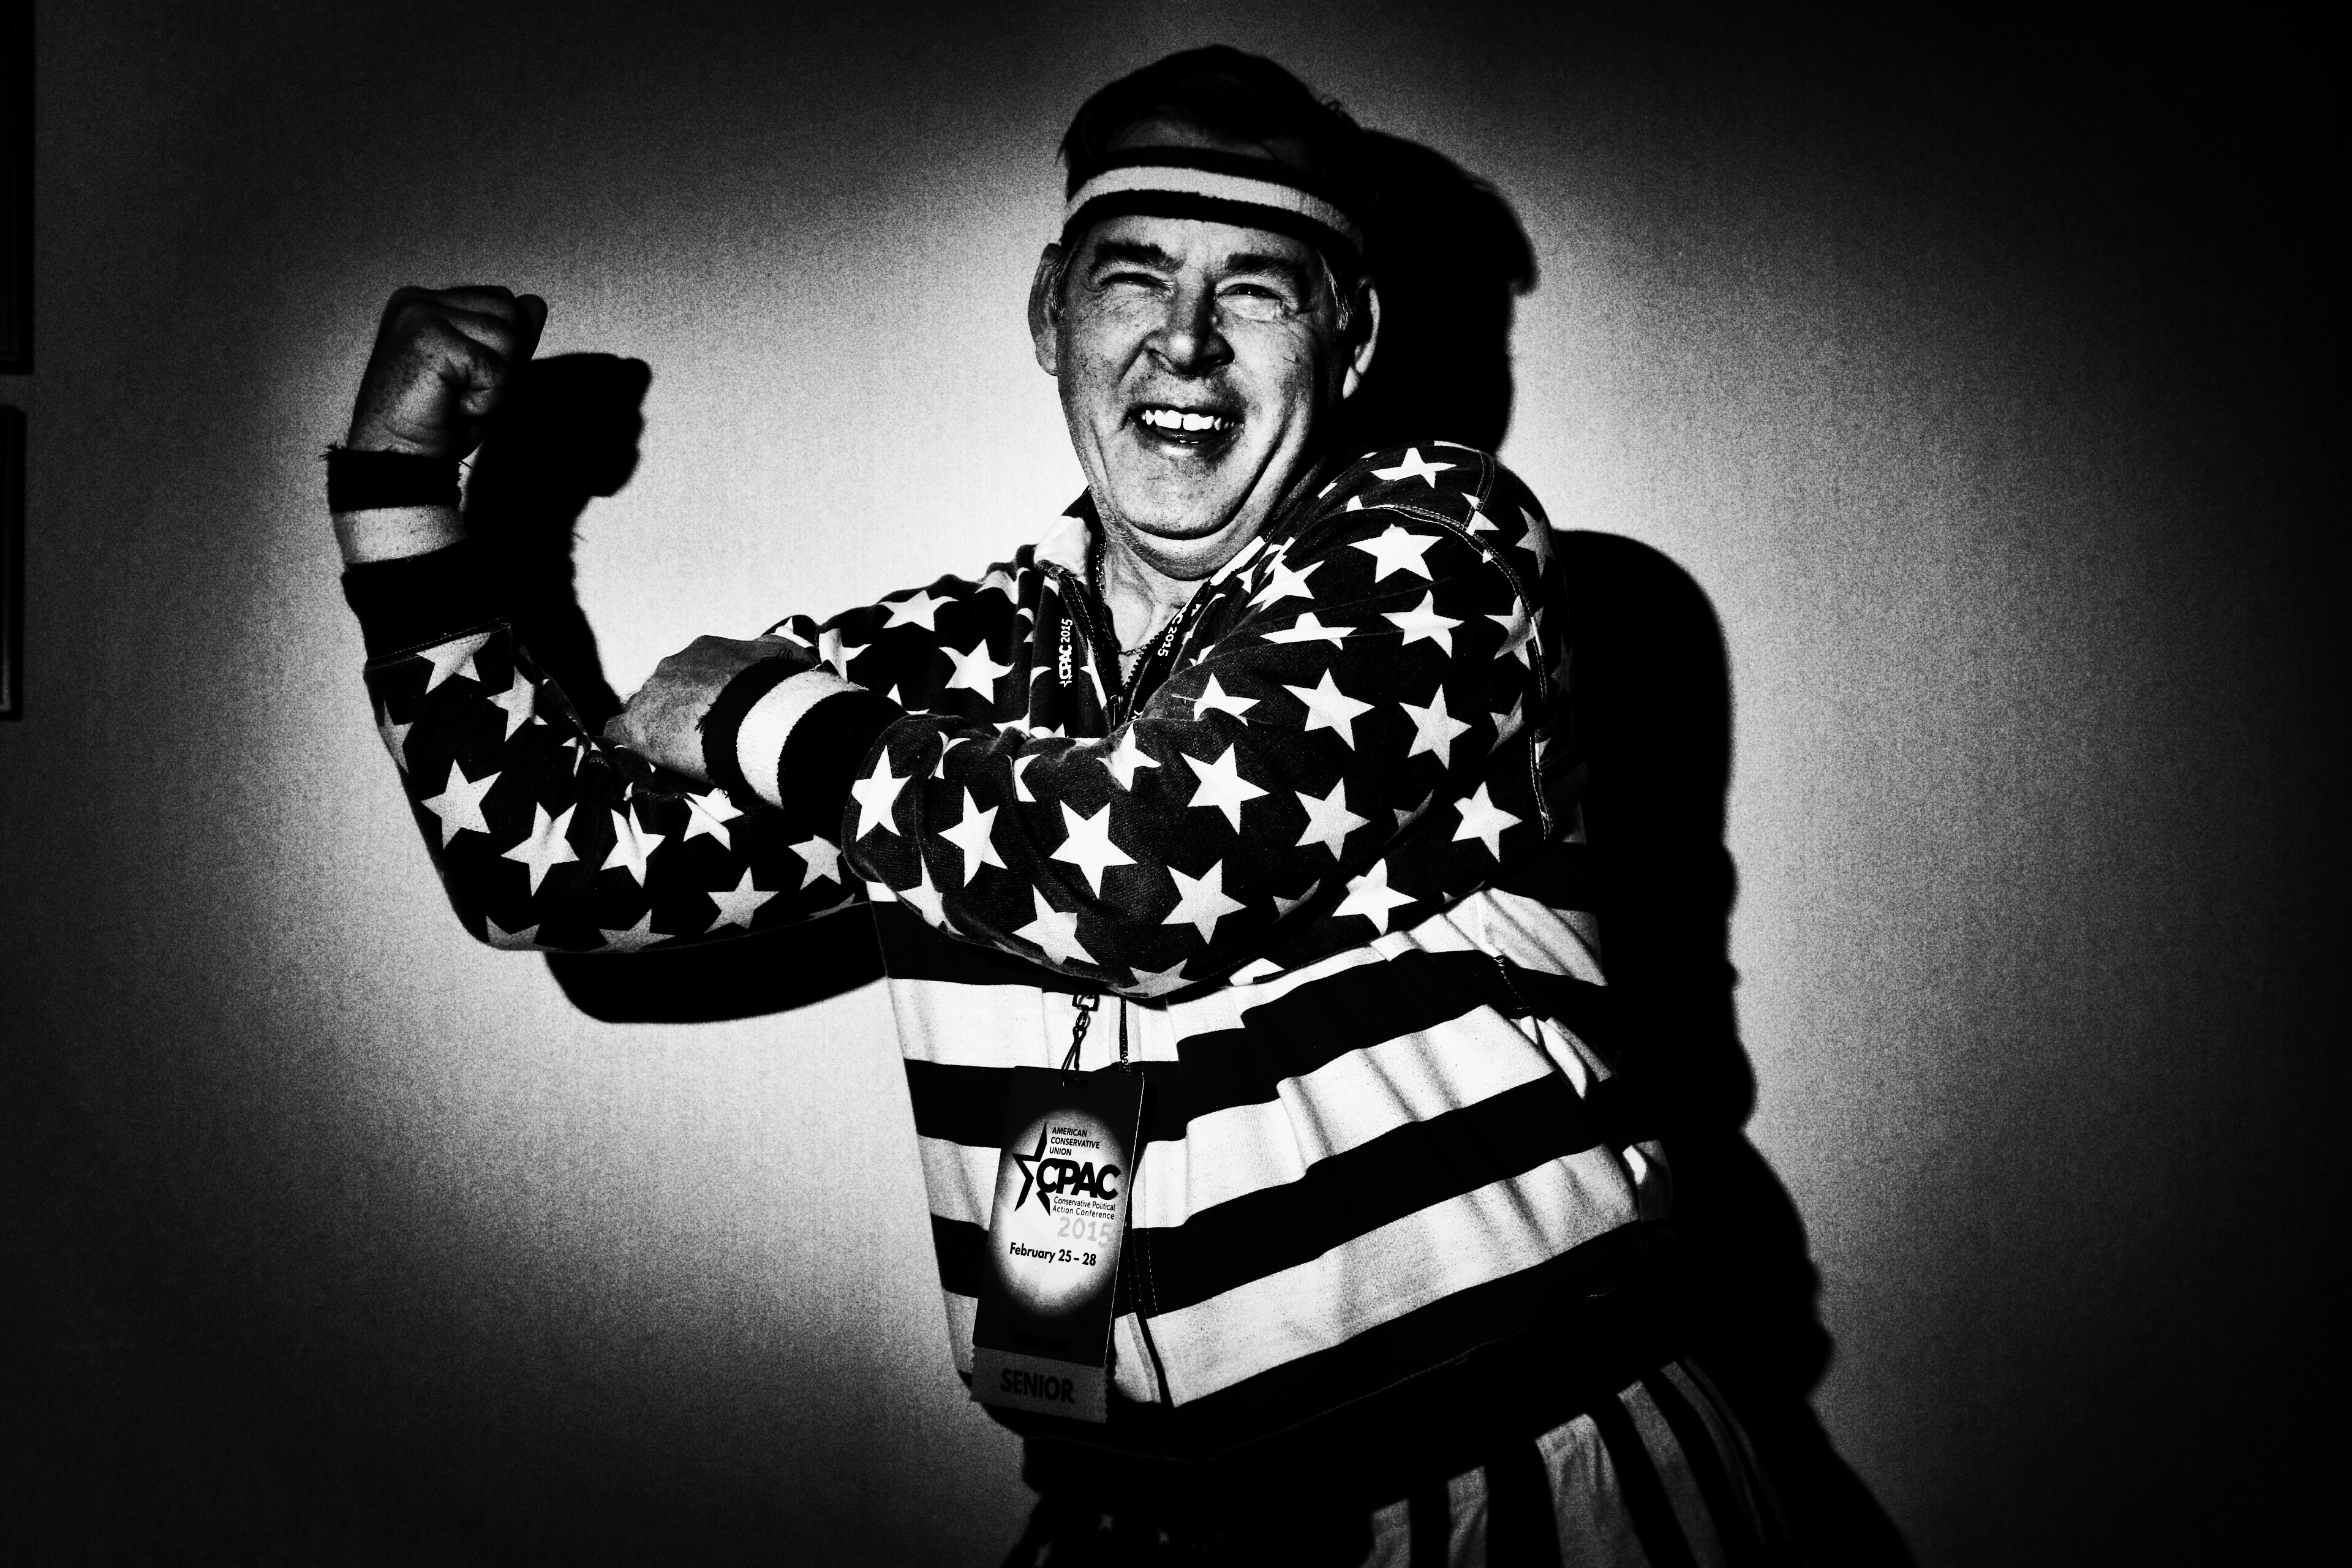 Timothy Flynn from New York City poses in an American flag jacket at CPAC in National Harbor, Md., on Feb. 26, 2015.